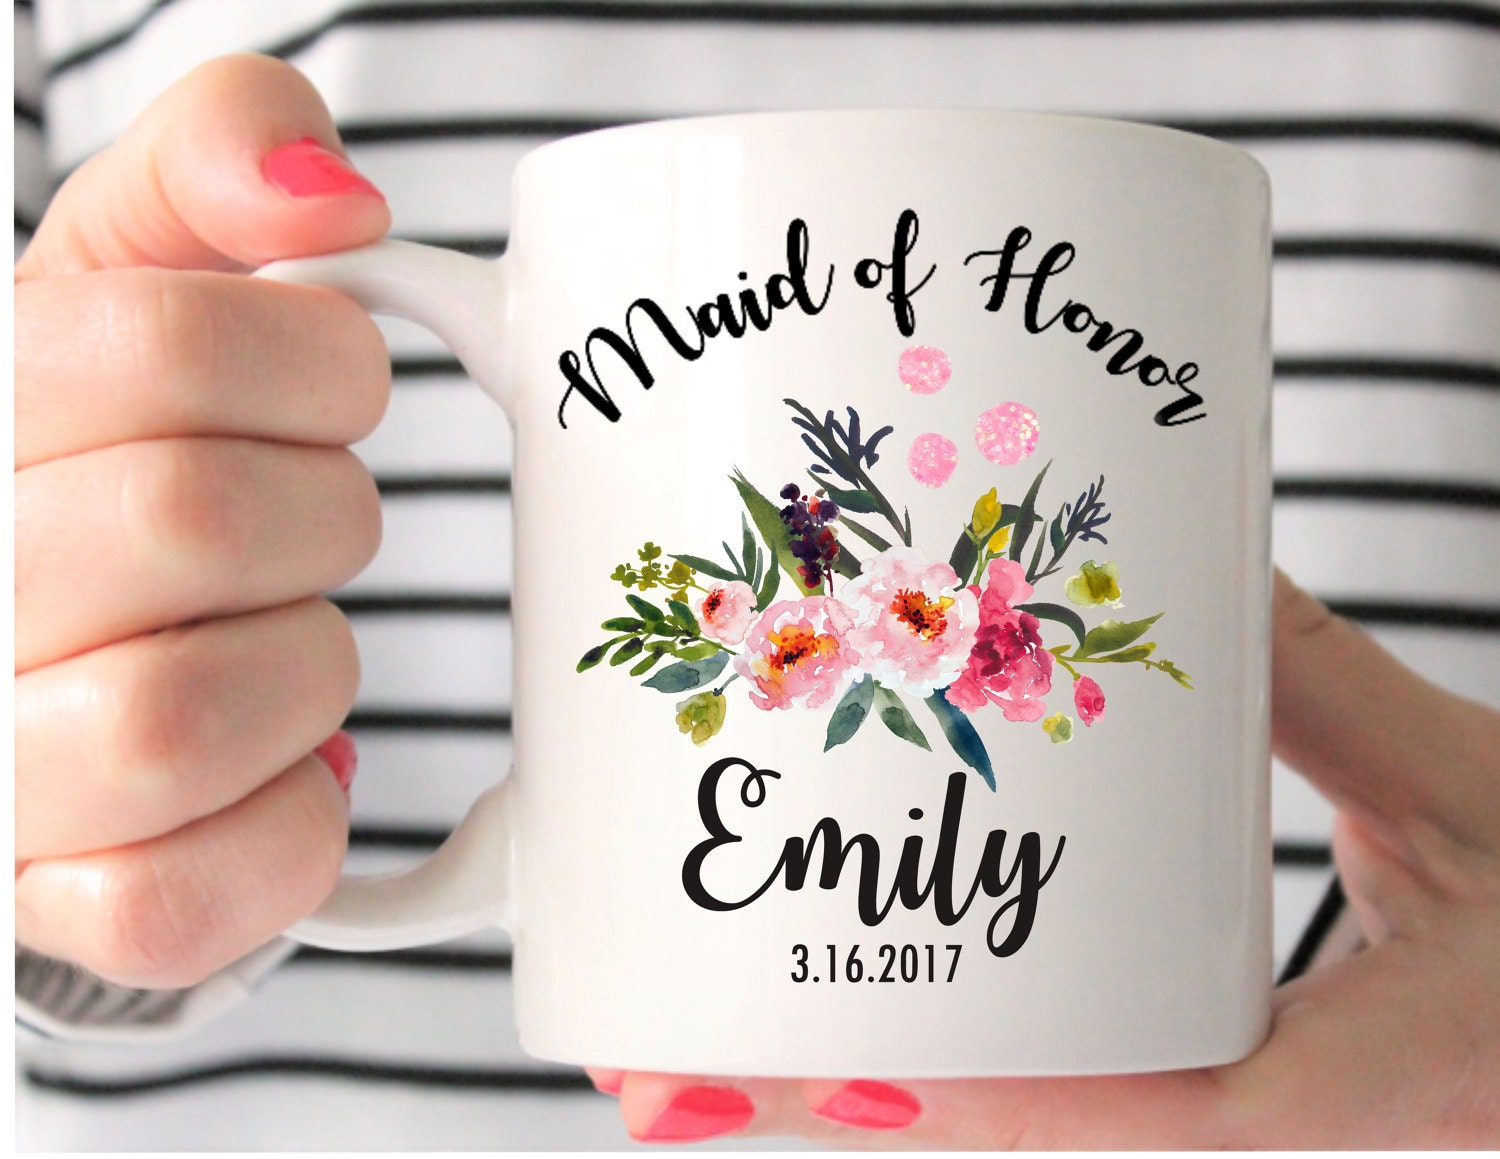 Maid Of Honor Gifts From Bride: Maid Of Honor Mug Custom Wedding Mug Maid Of Honor Gift